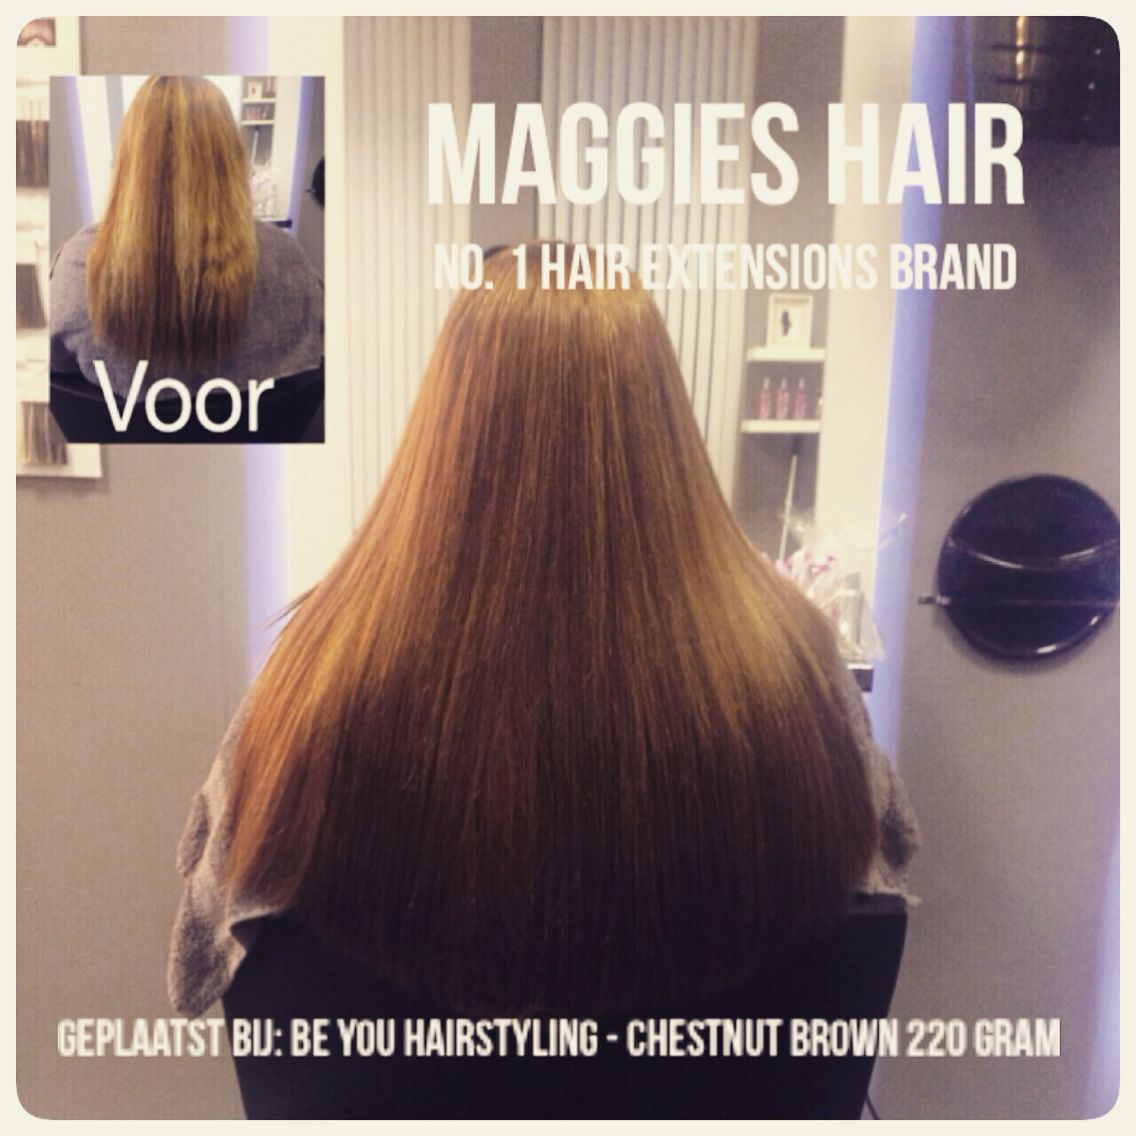 Amazing Transformation With Hairextensions From Maggieshair Dont